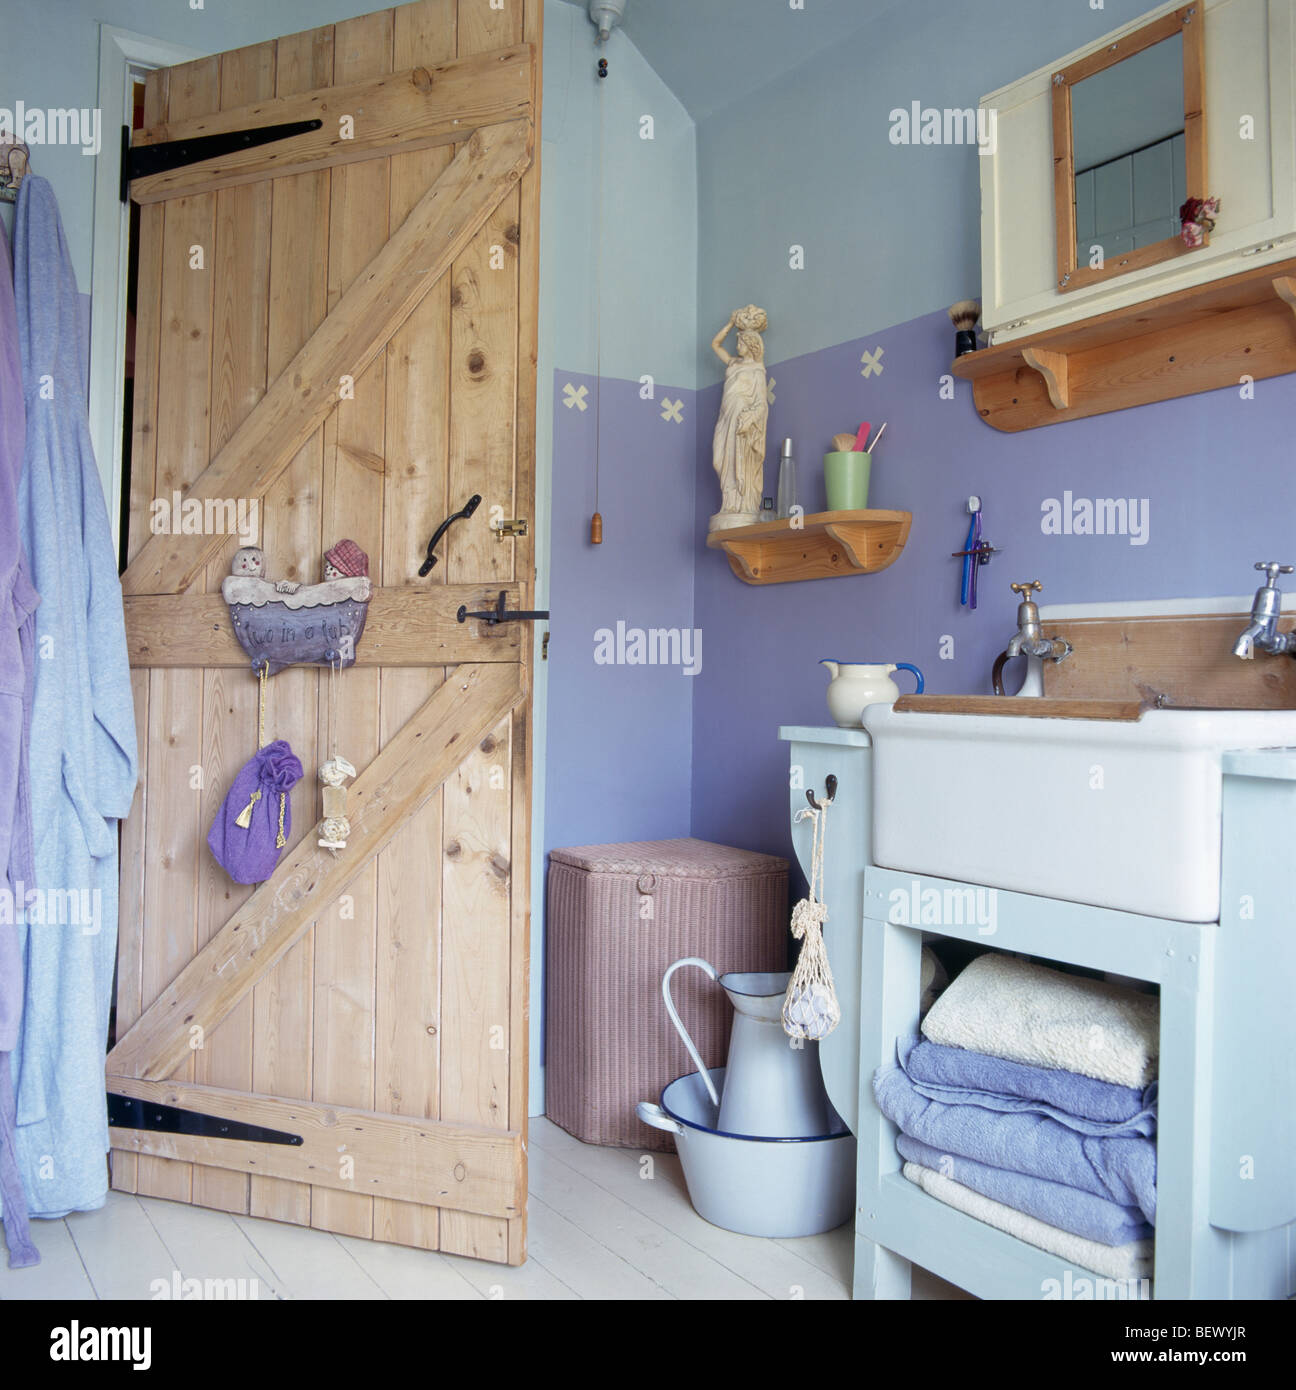 Stock photo stripped pine door in cottage bathroom with two tone painted blue walls and large white basin in pale blue vanity unit